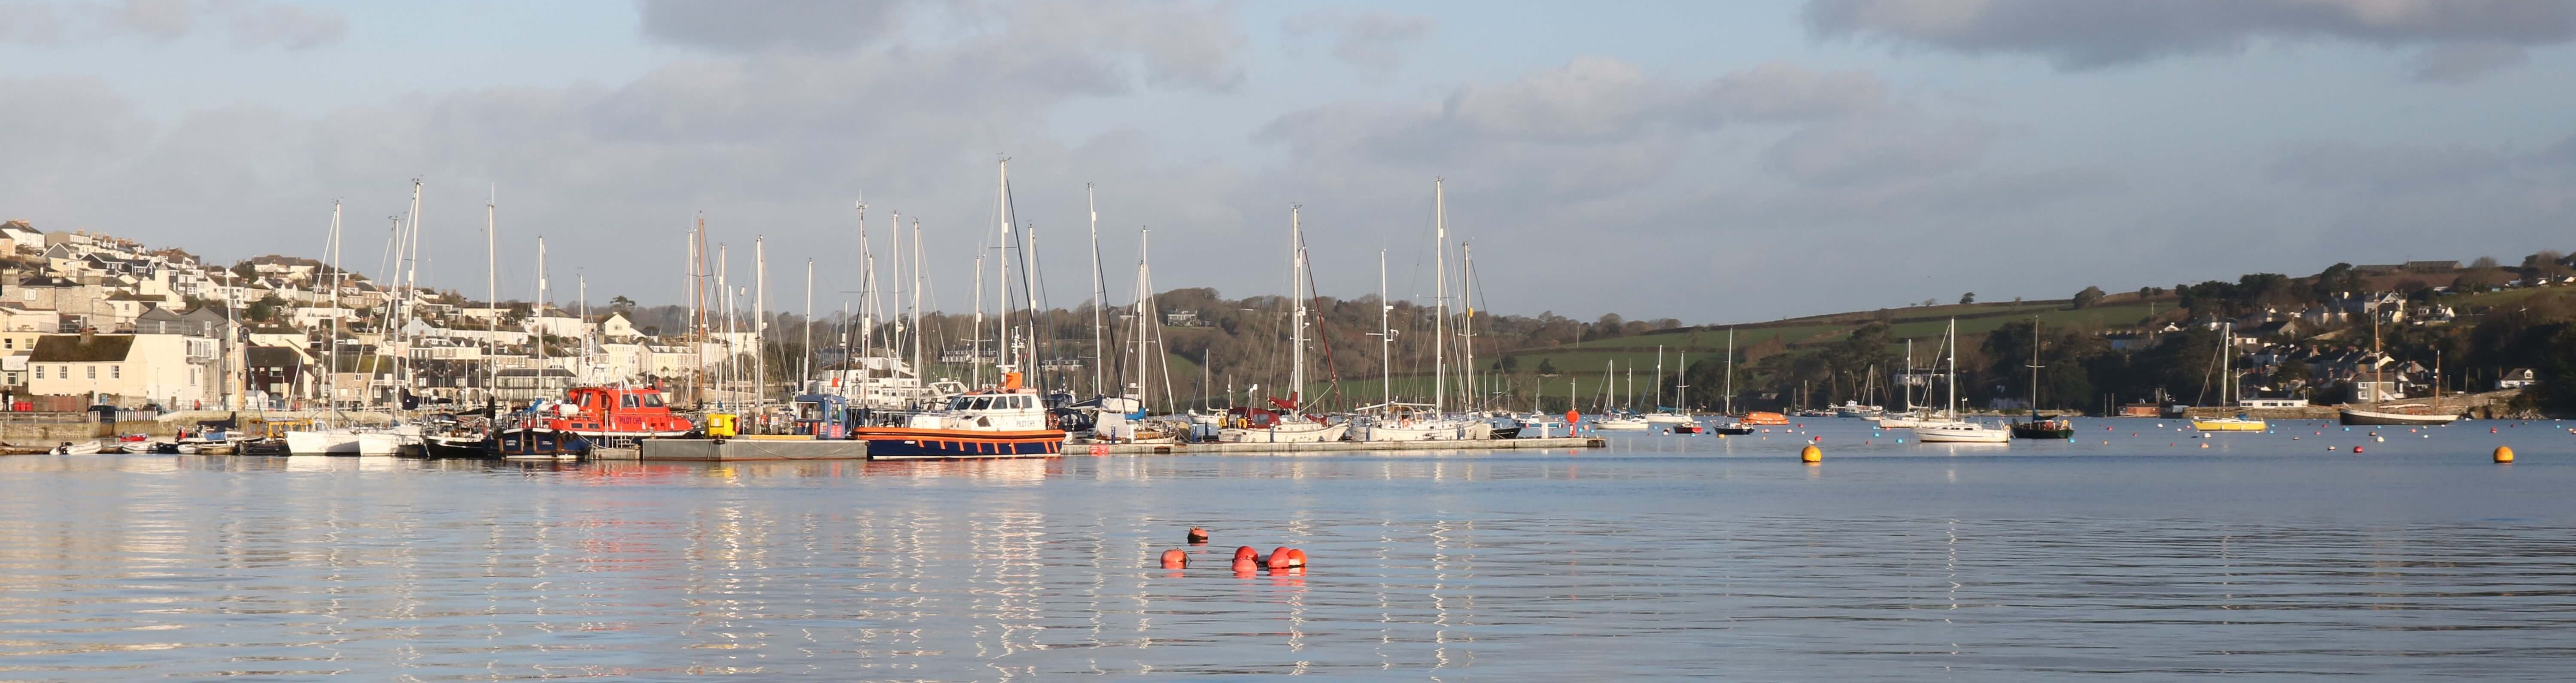 falmouth-inner-harbour